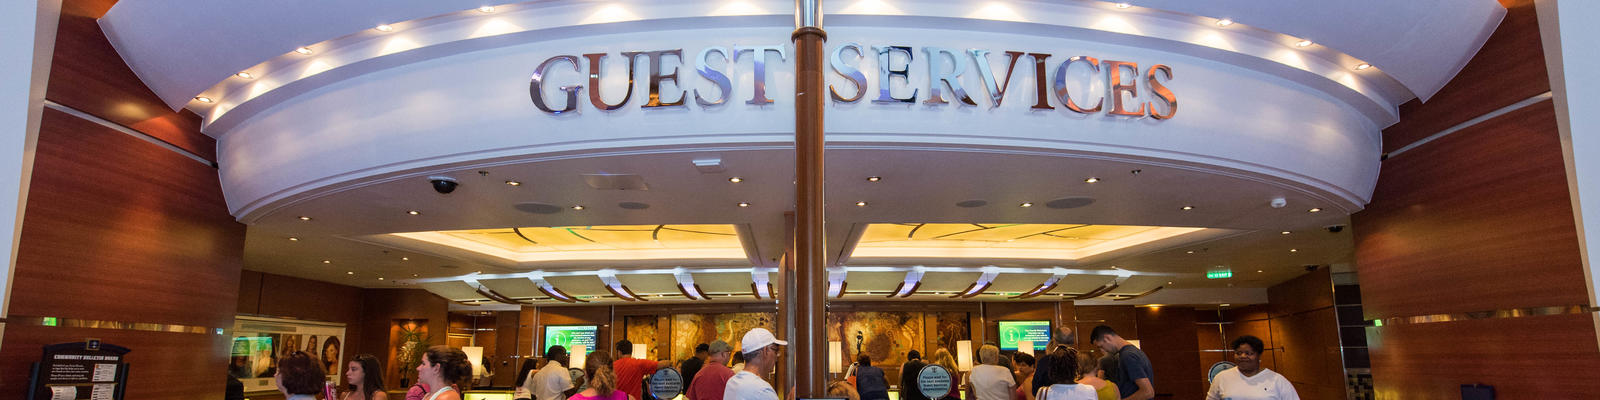 Guest Services Desk on Oasis of the Seas (Photo: Cruise Critic)